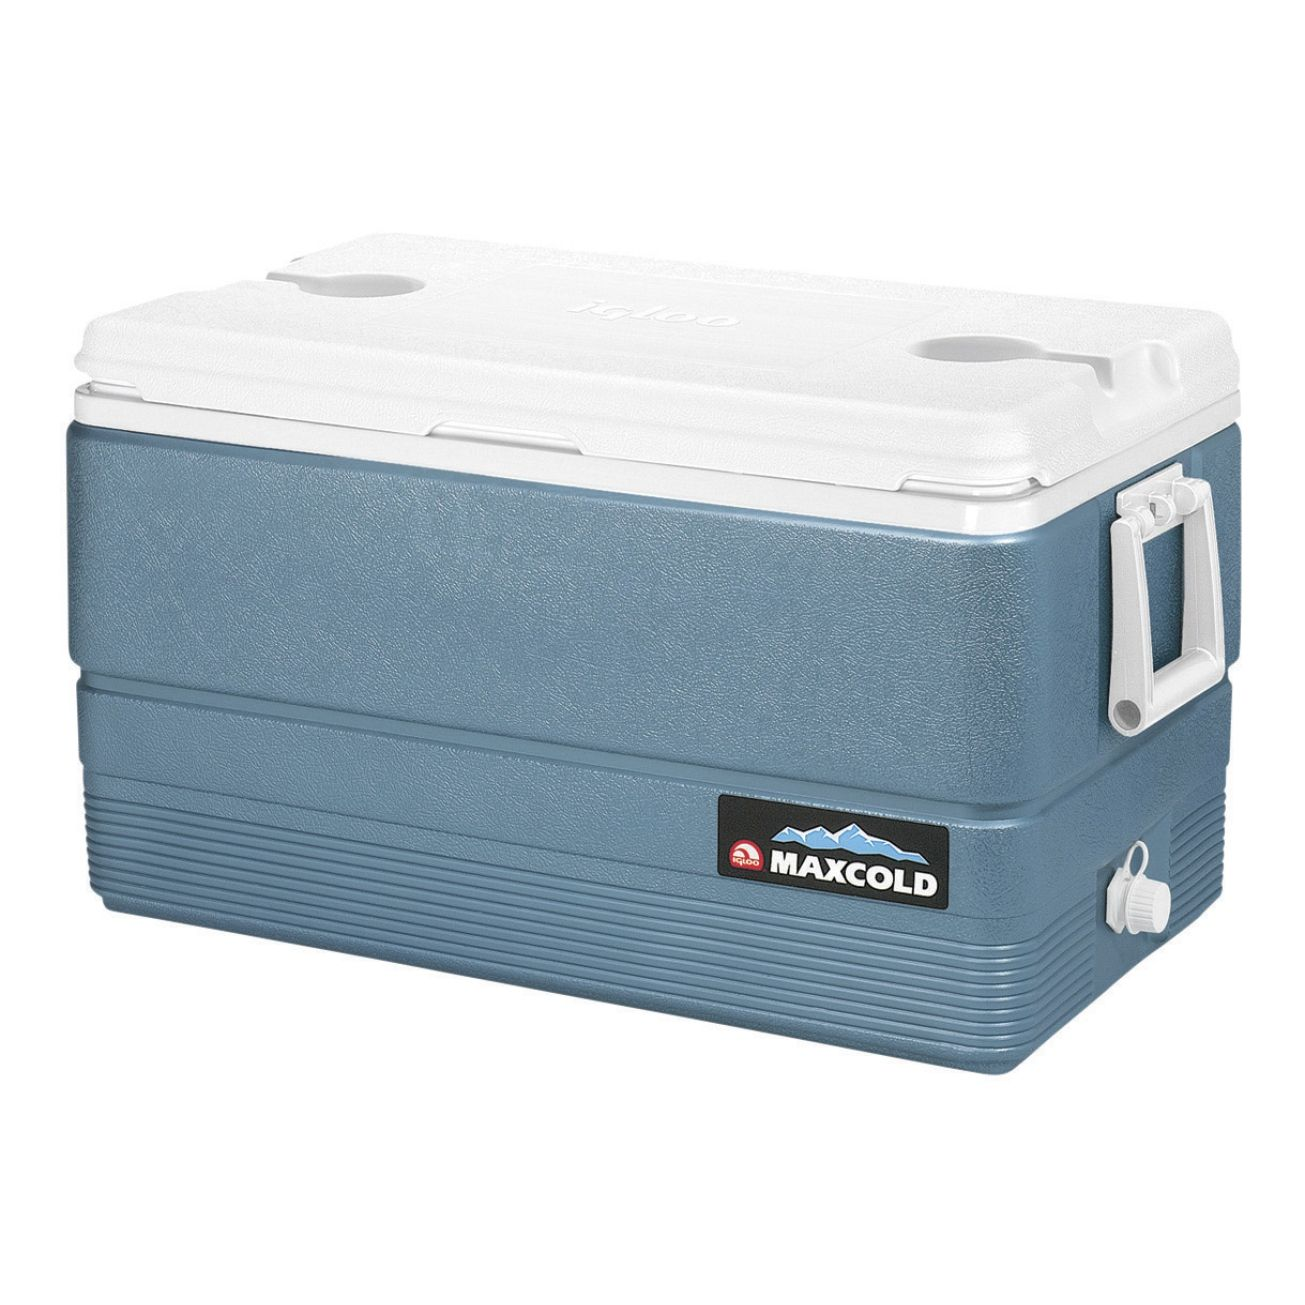 Igloo® Max Cold Ice Chest Ace Hardware Ice chest